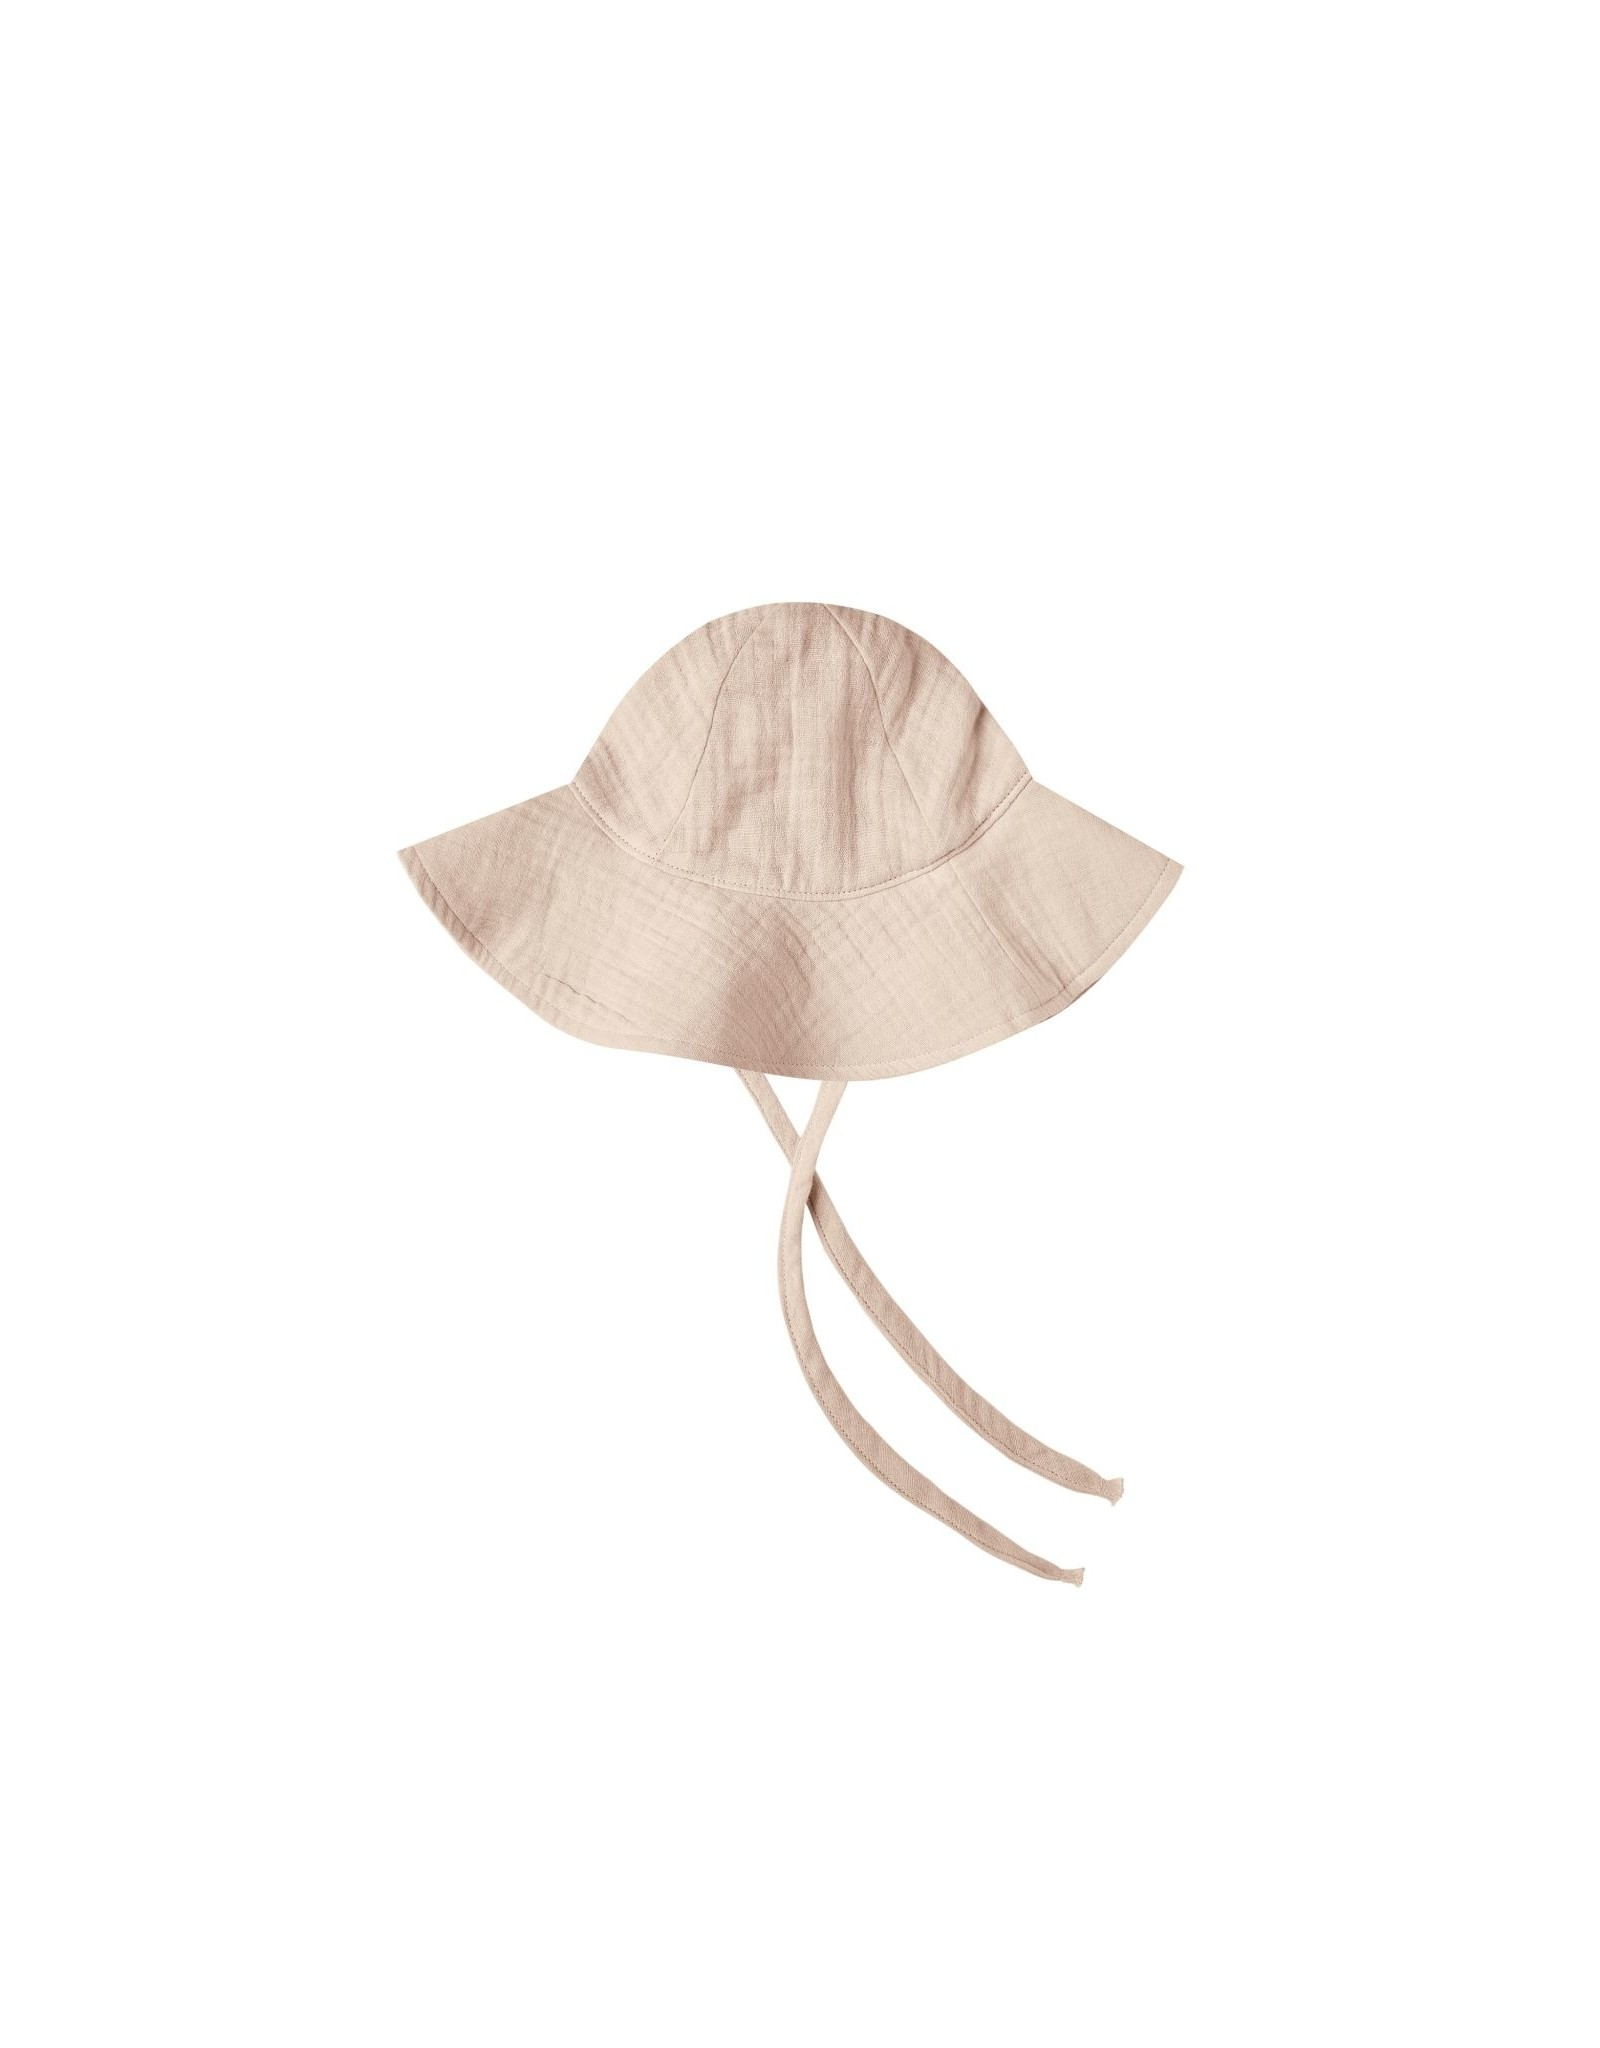 Rylee and Cru floppy sun hat- shell